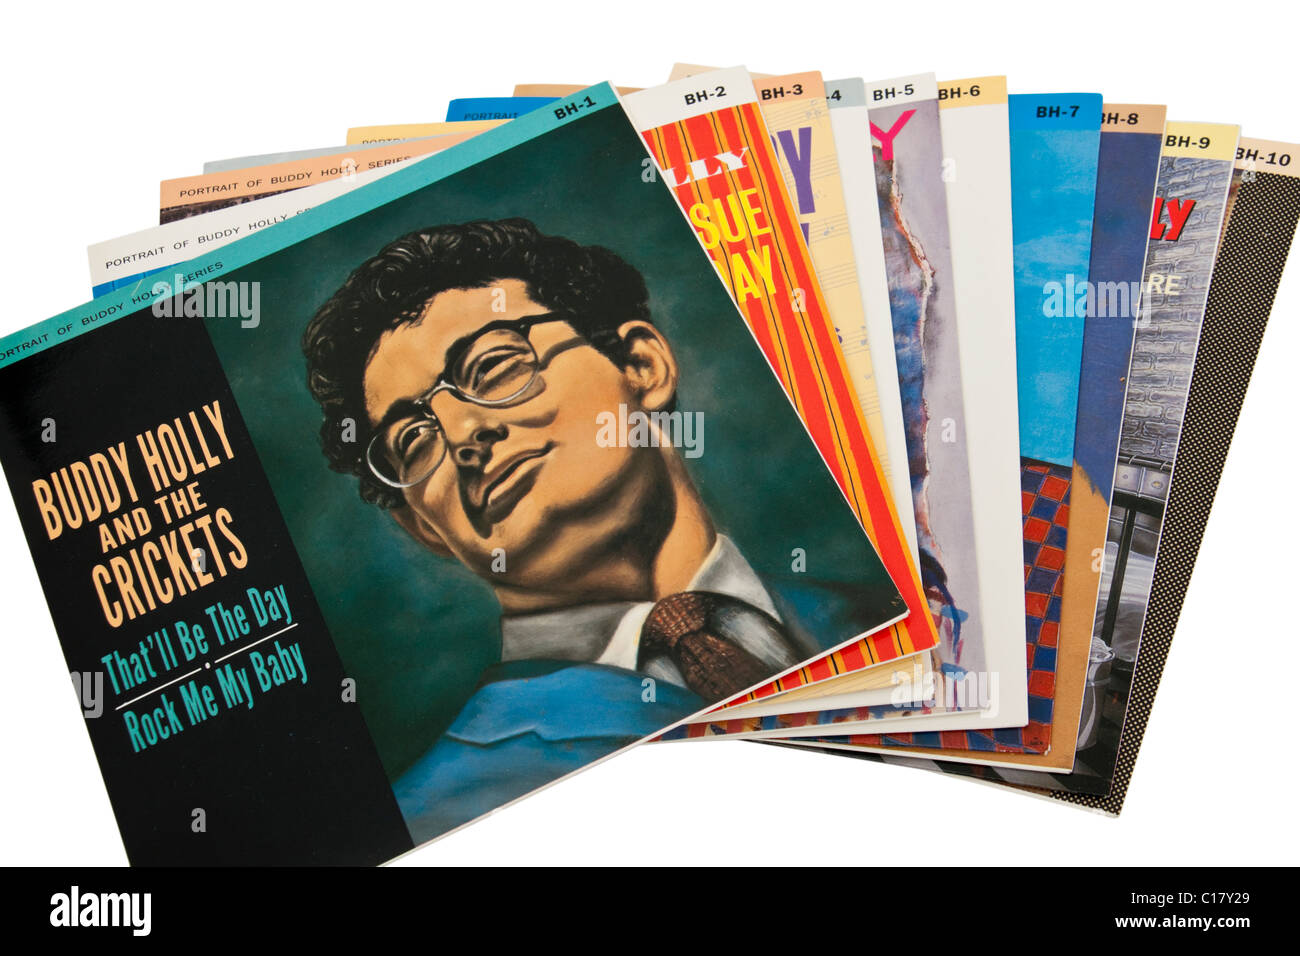 Collection de Buddy Holly vinyl records / 7' des célibataires / EP's Photo Stock